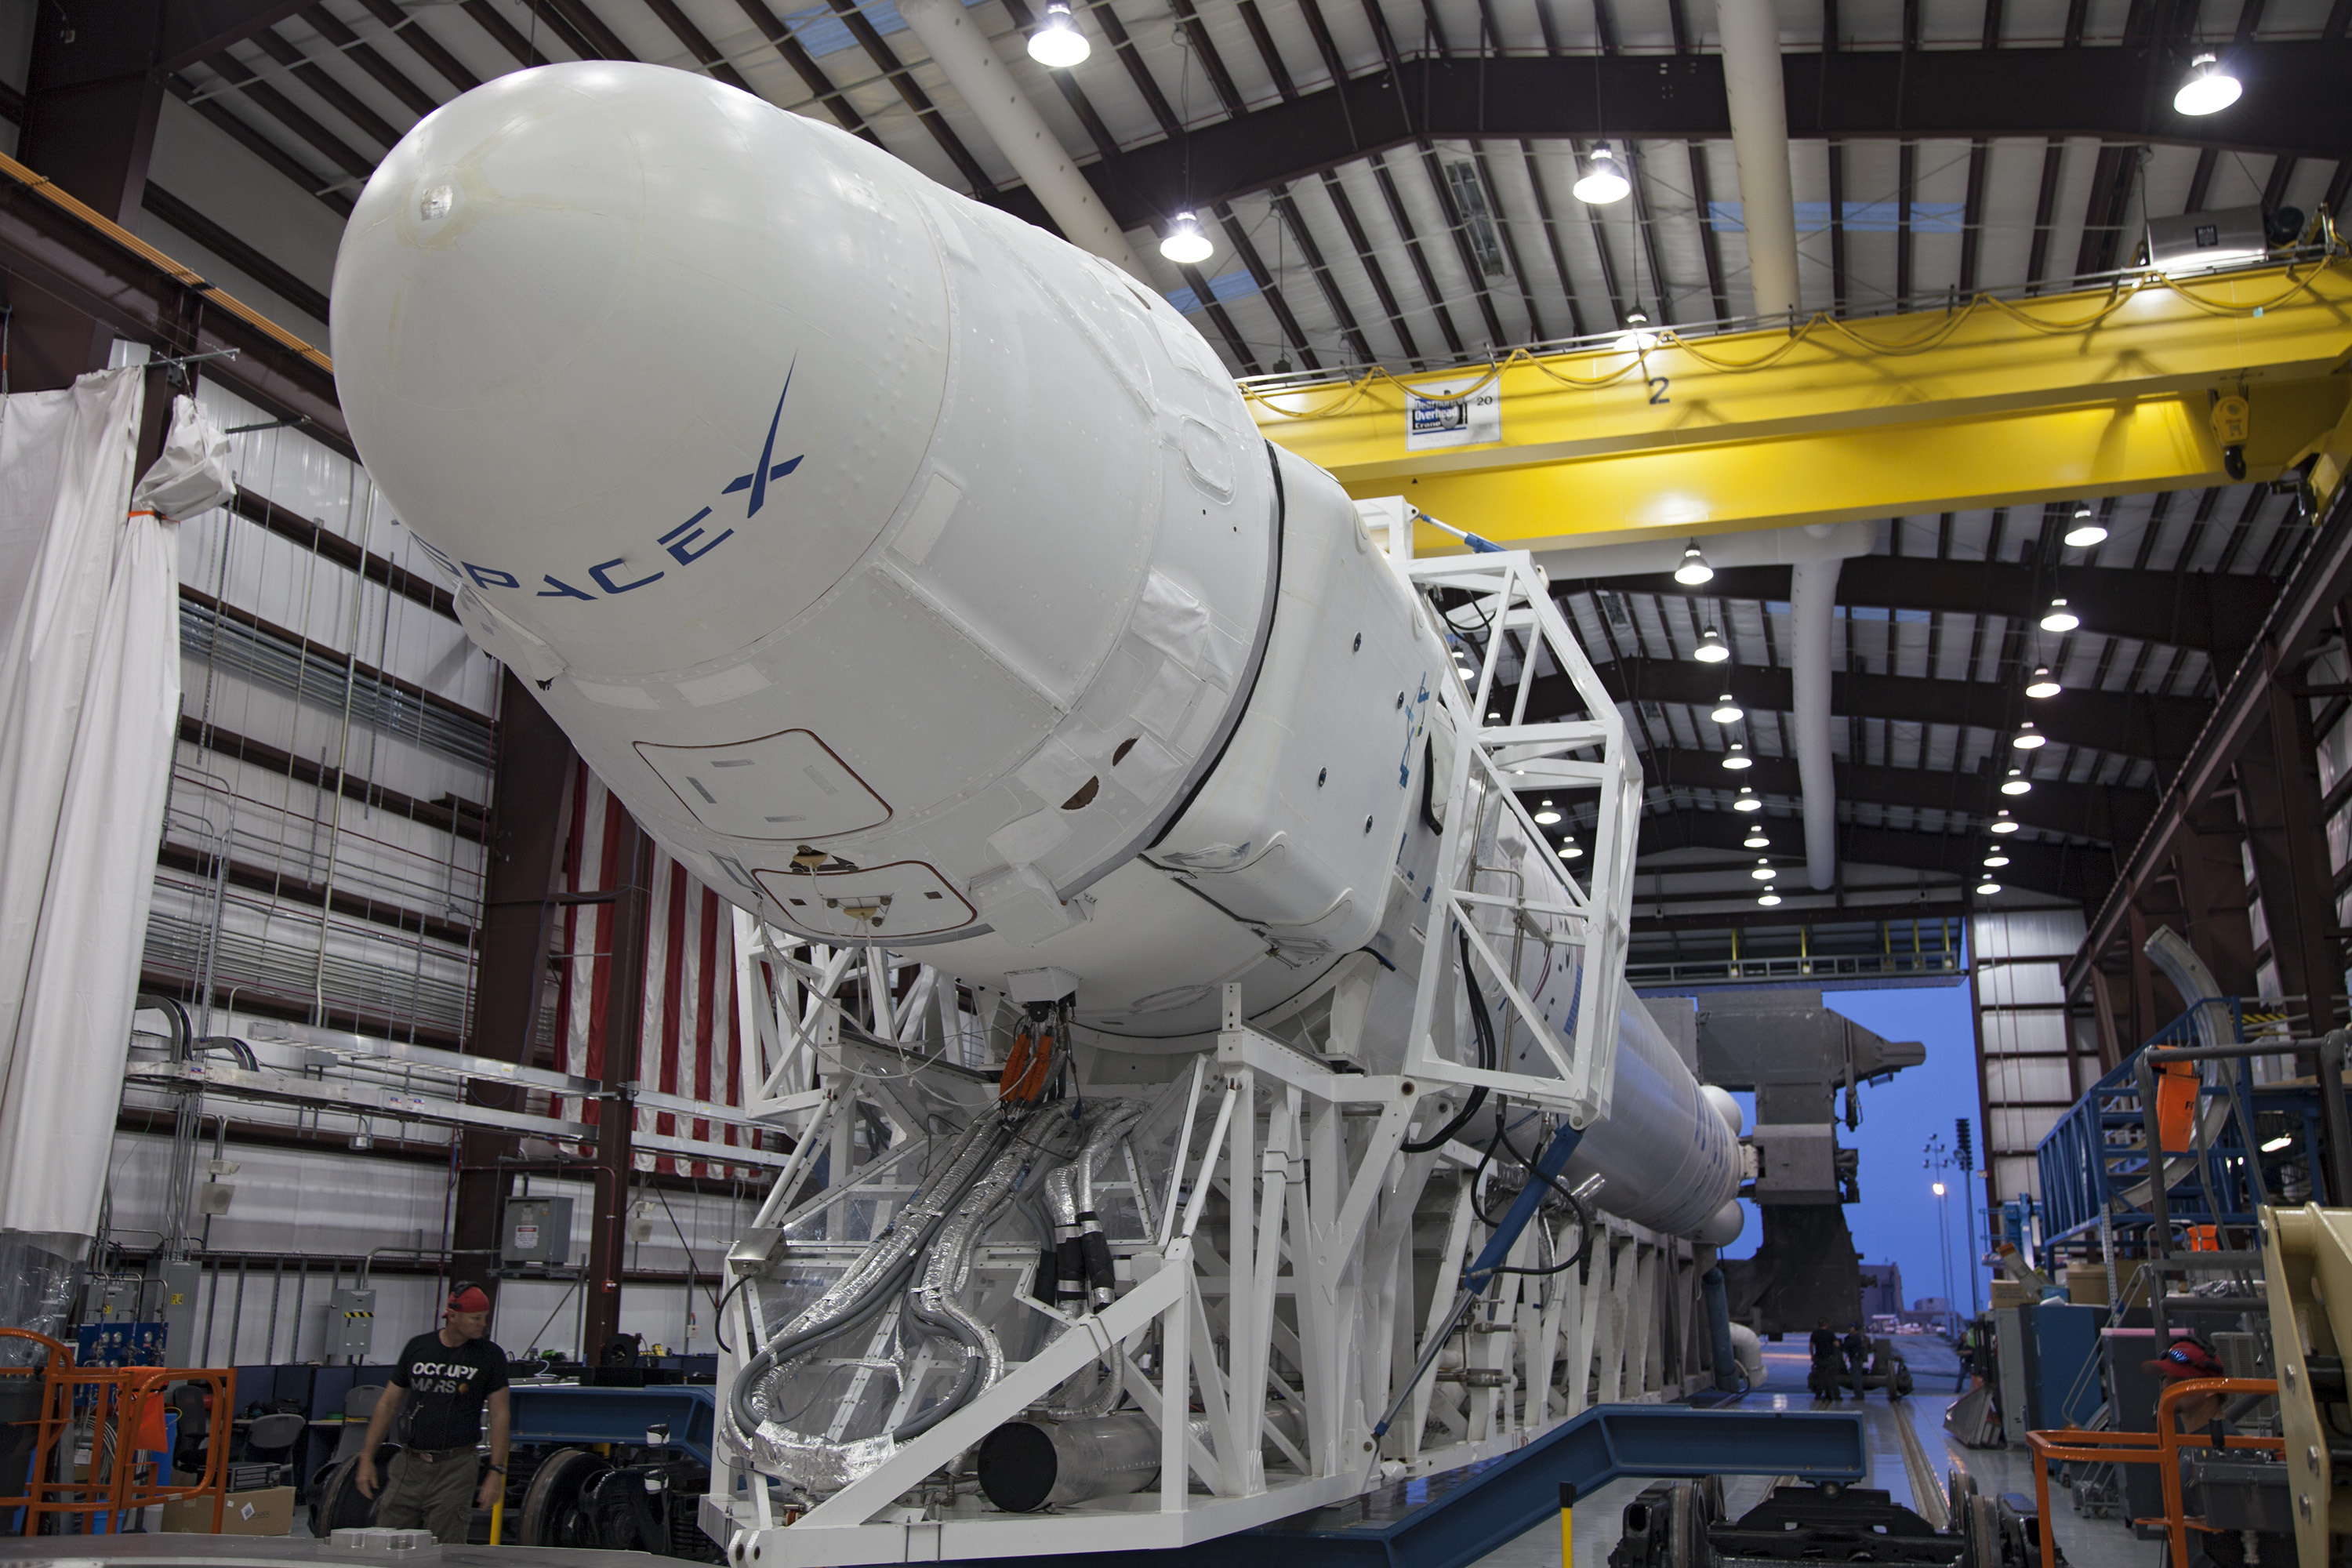 spacex dragon rocket in hanger - photo #14